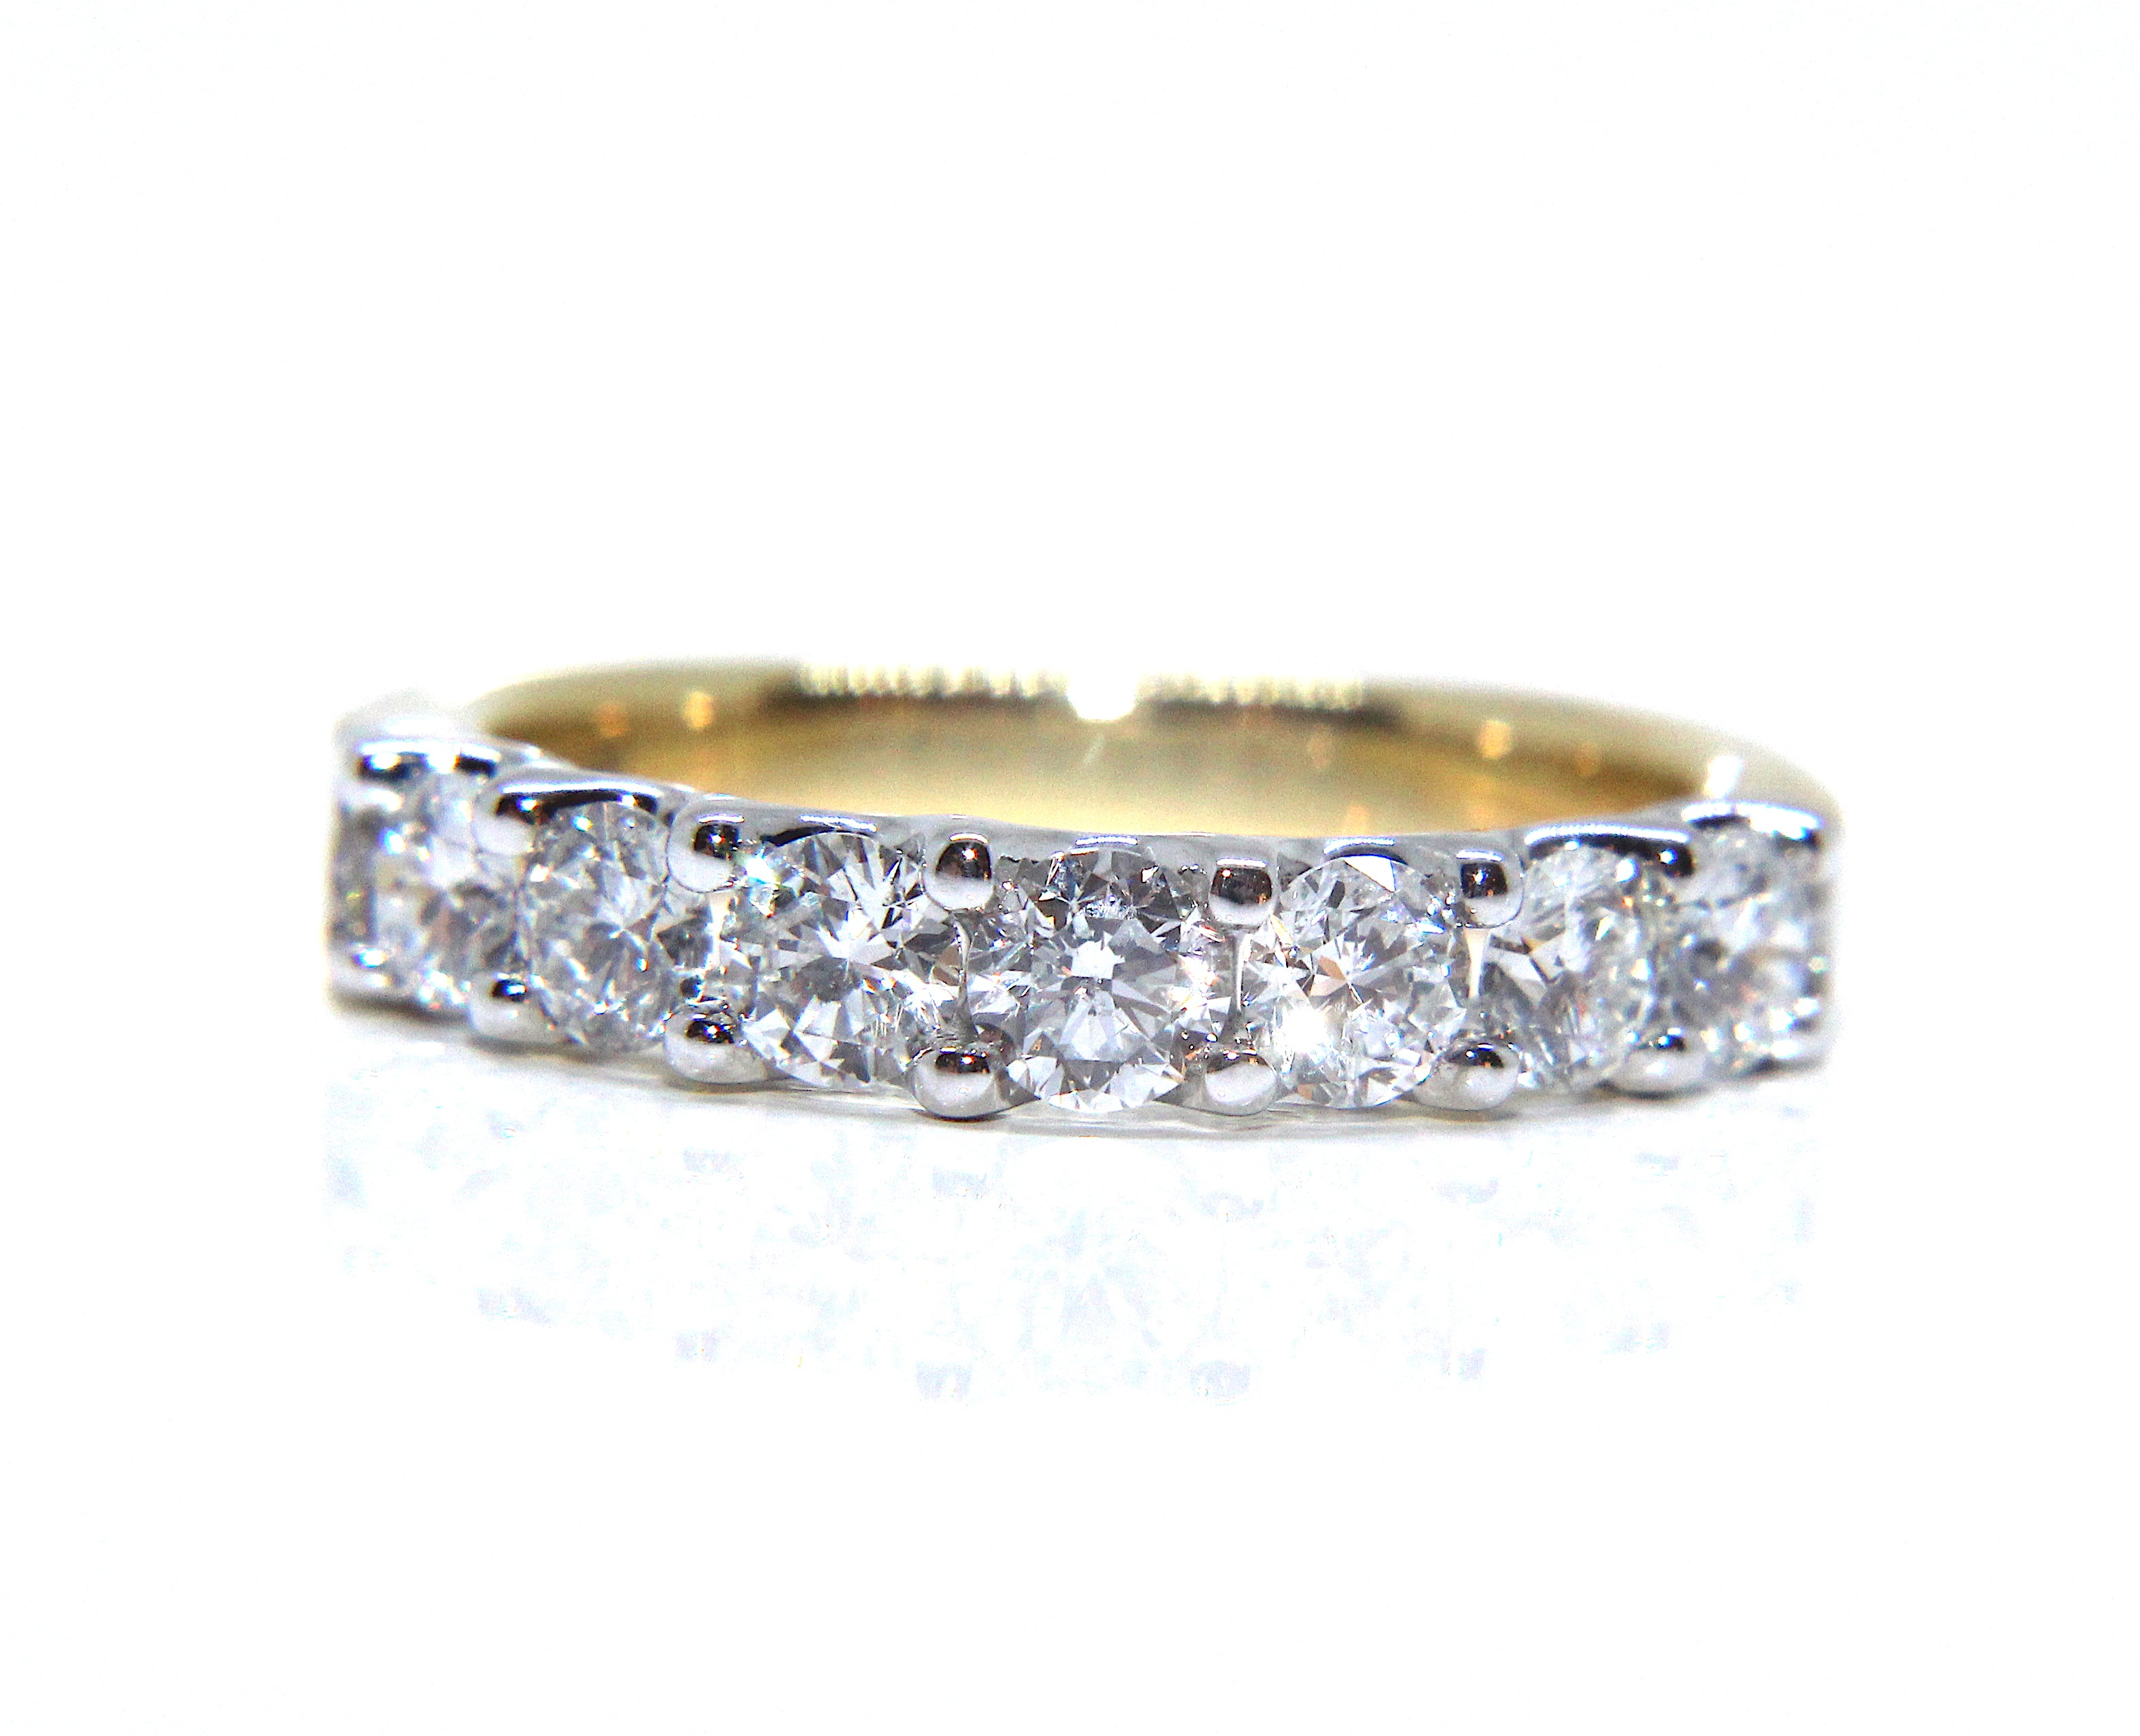 half index set grain diamonds band eternity diamond of platinum jewellery wedding ah ring rings